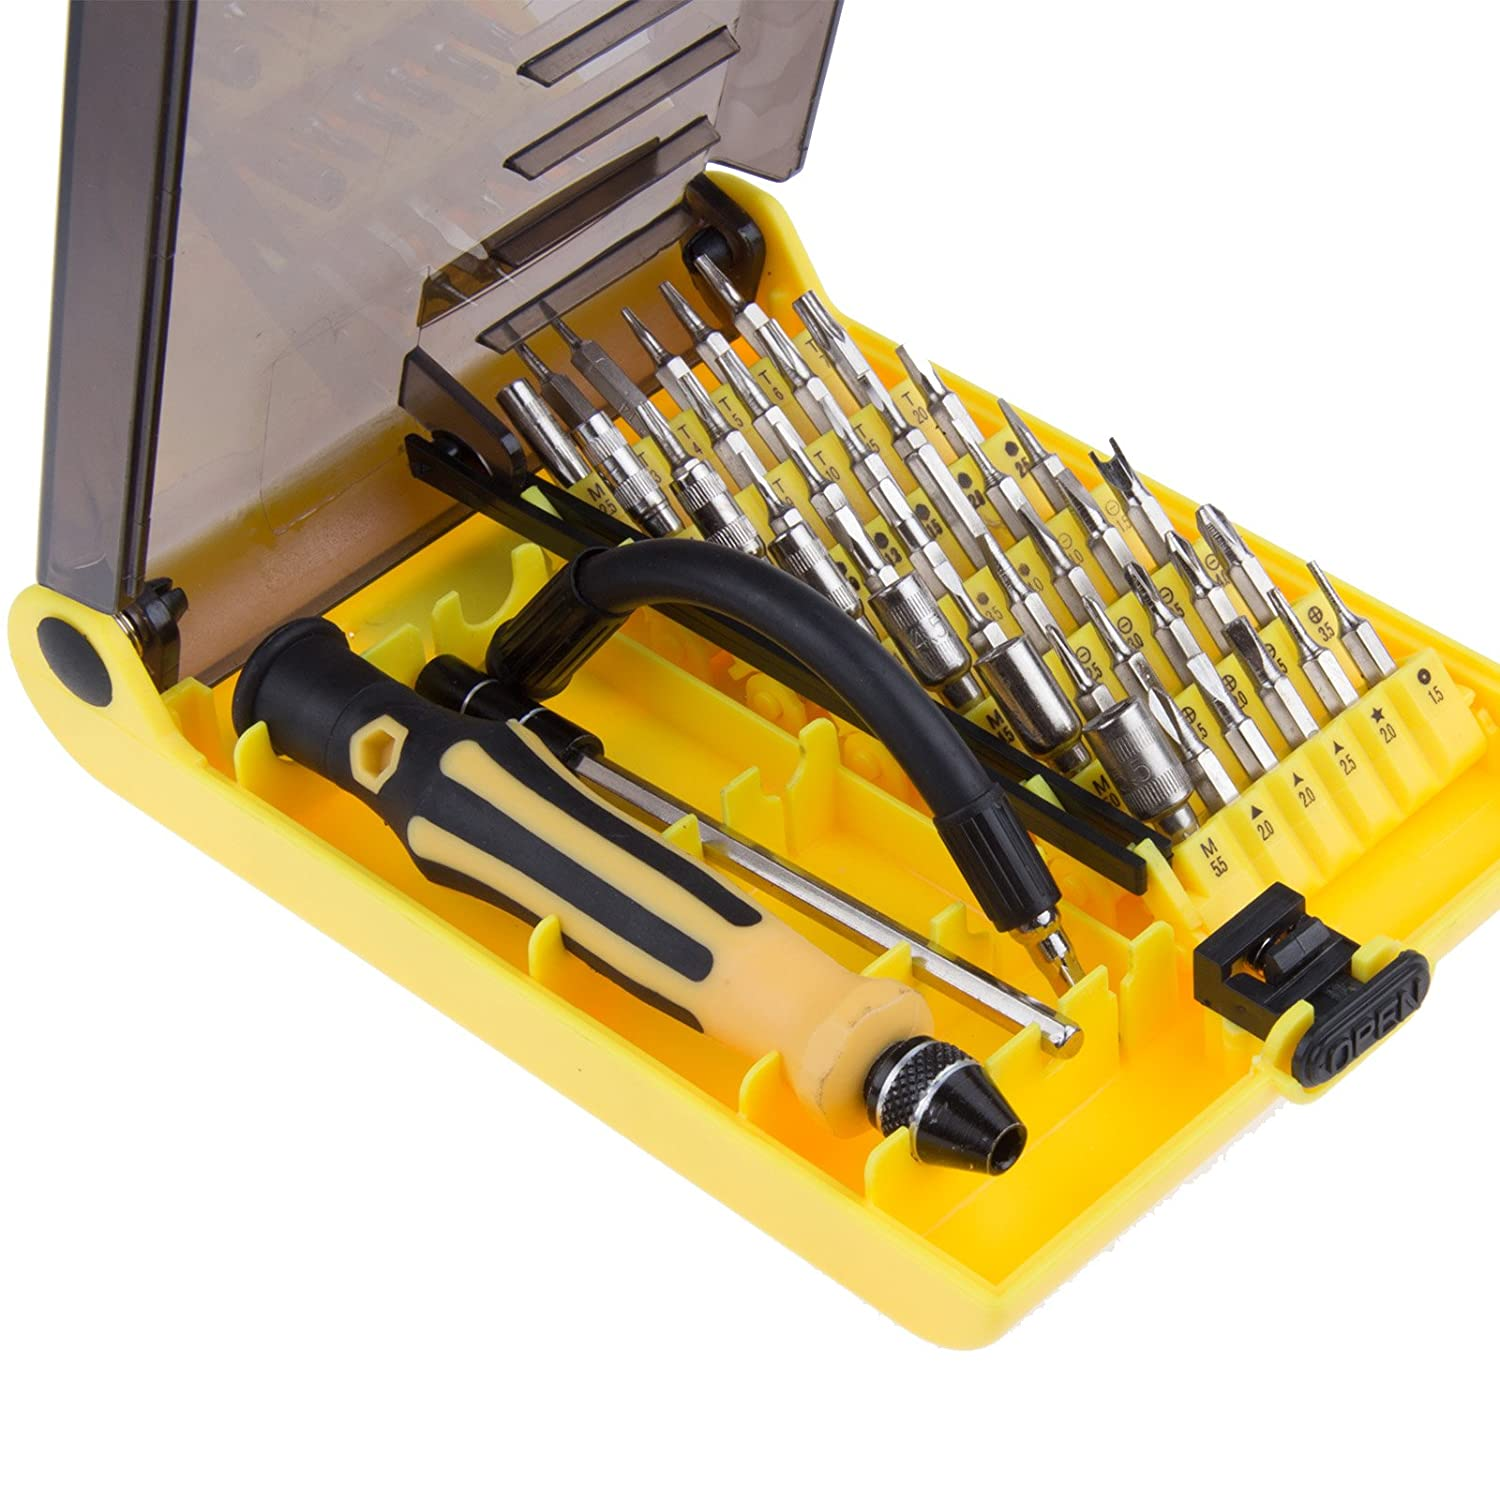 4-in-1 Hand Tool Screwdriver with TPR Handle For Toolbox Tool bag Truck Camping